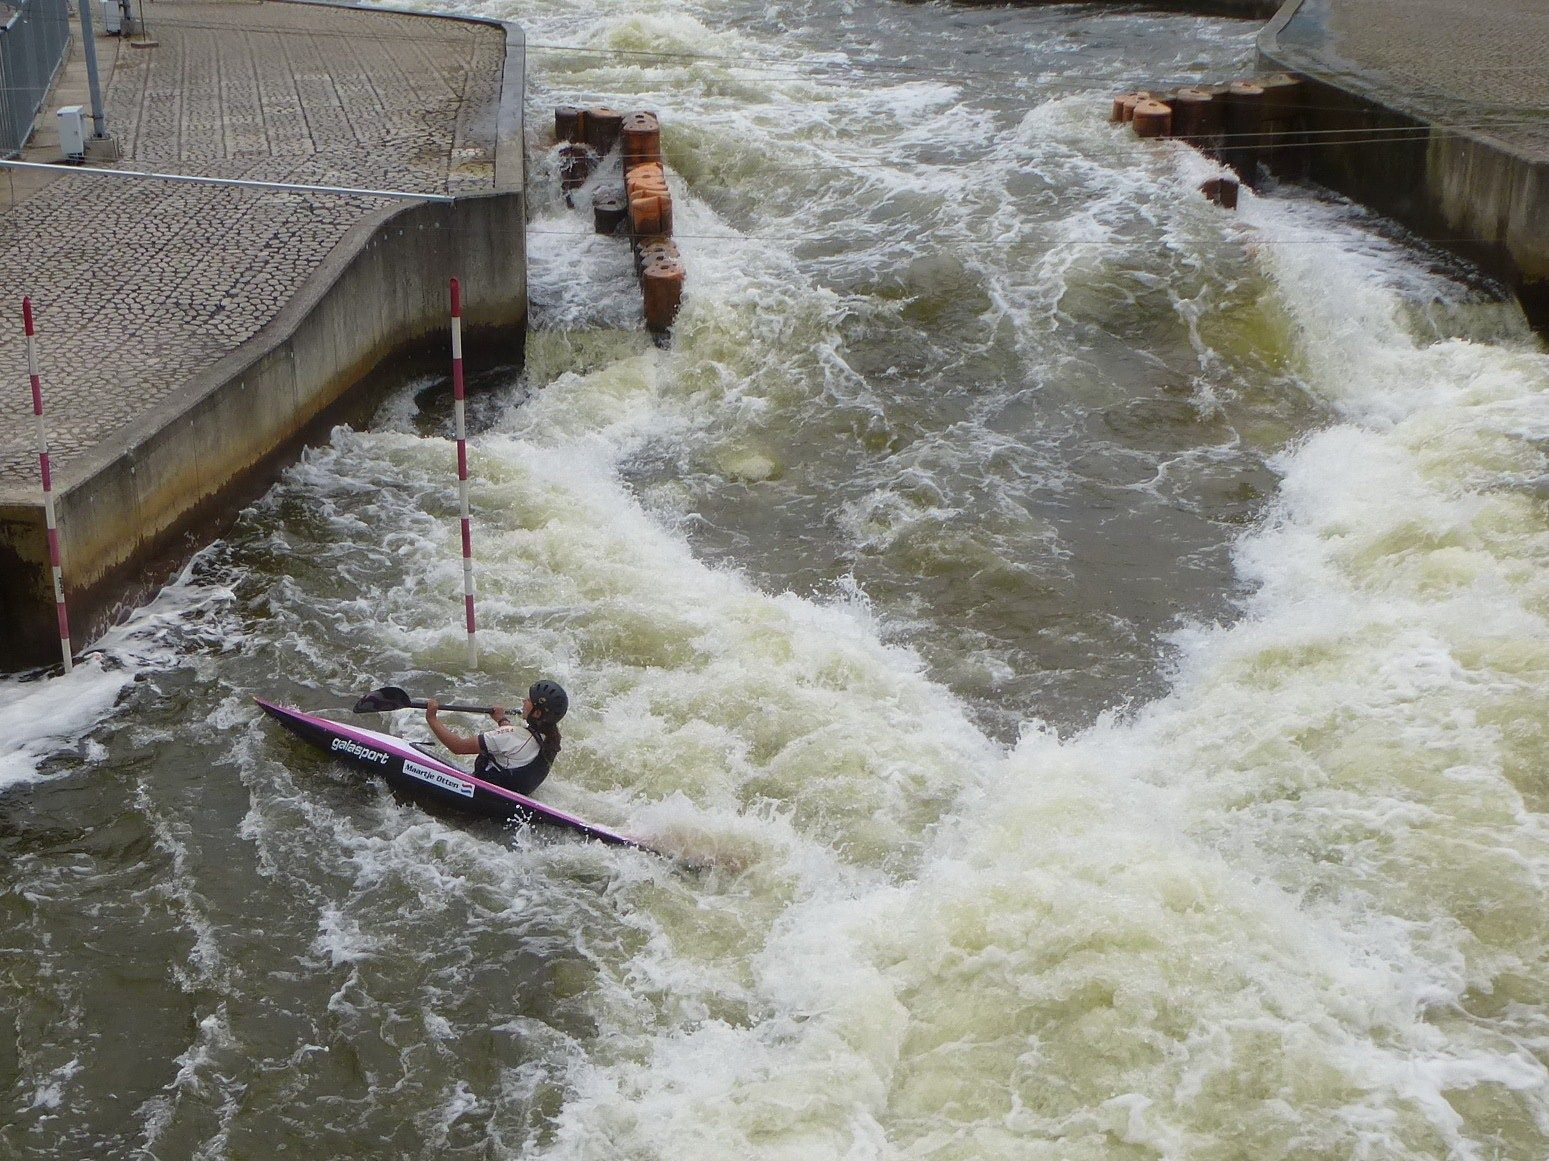 Had an amazing time today on the whitewater course in Zoetermeer, the Netherlands.